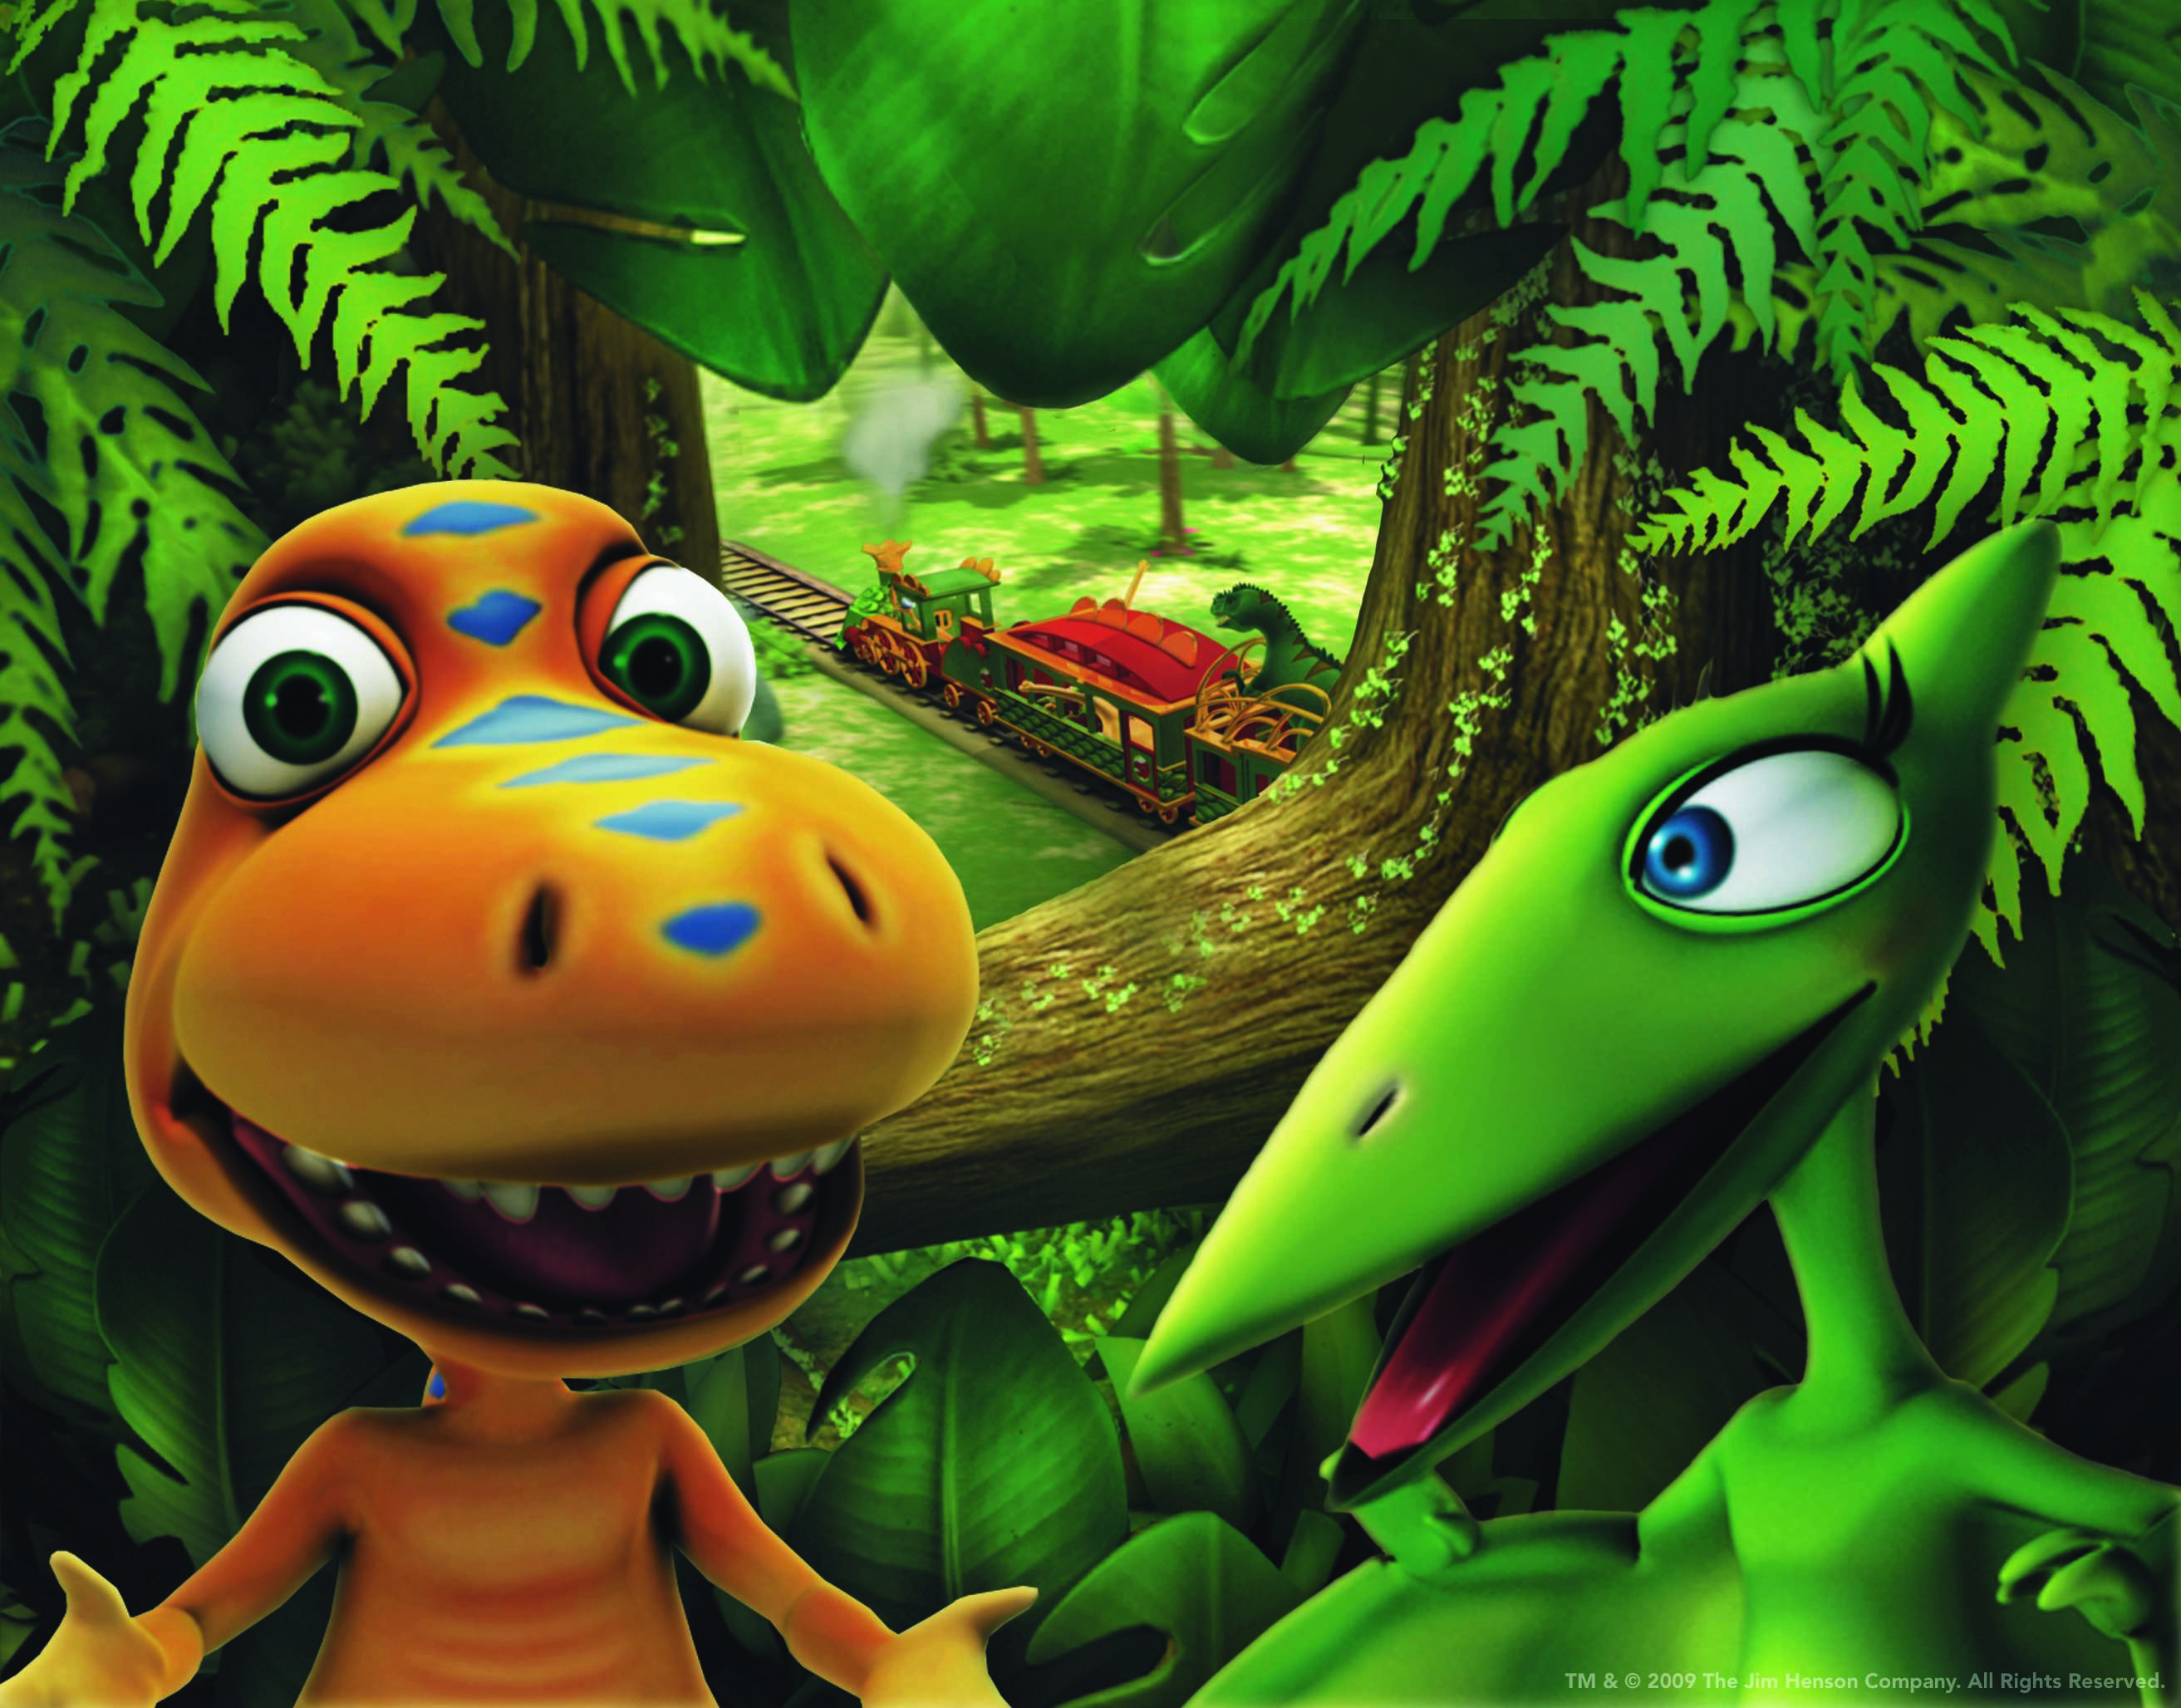 Dinosaur Train Series1-The Jim Henson Co